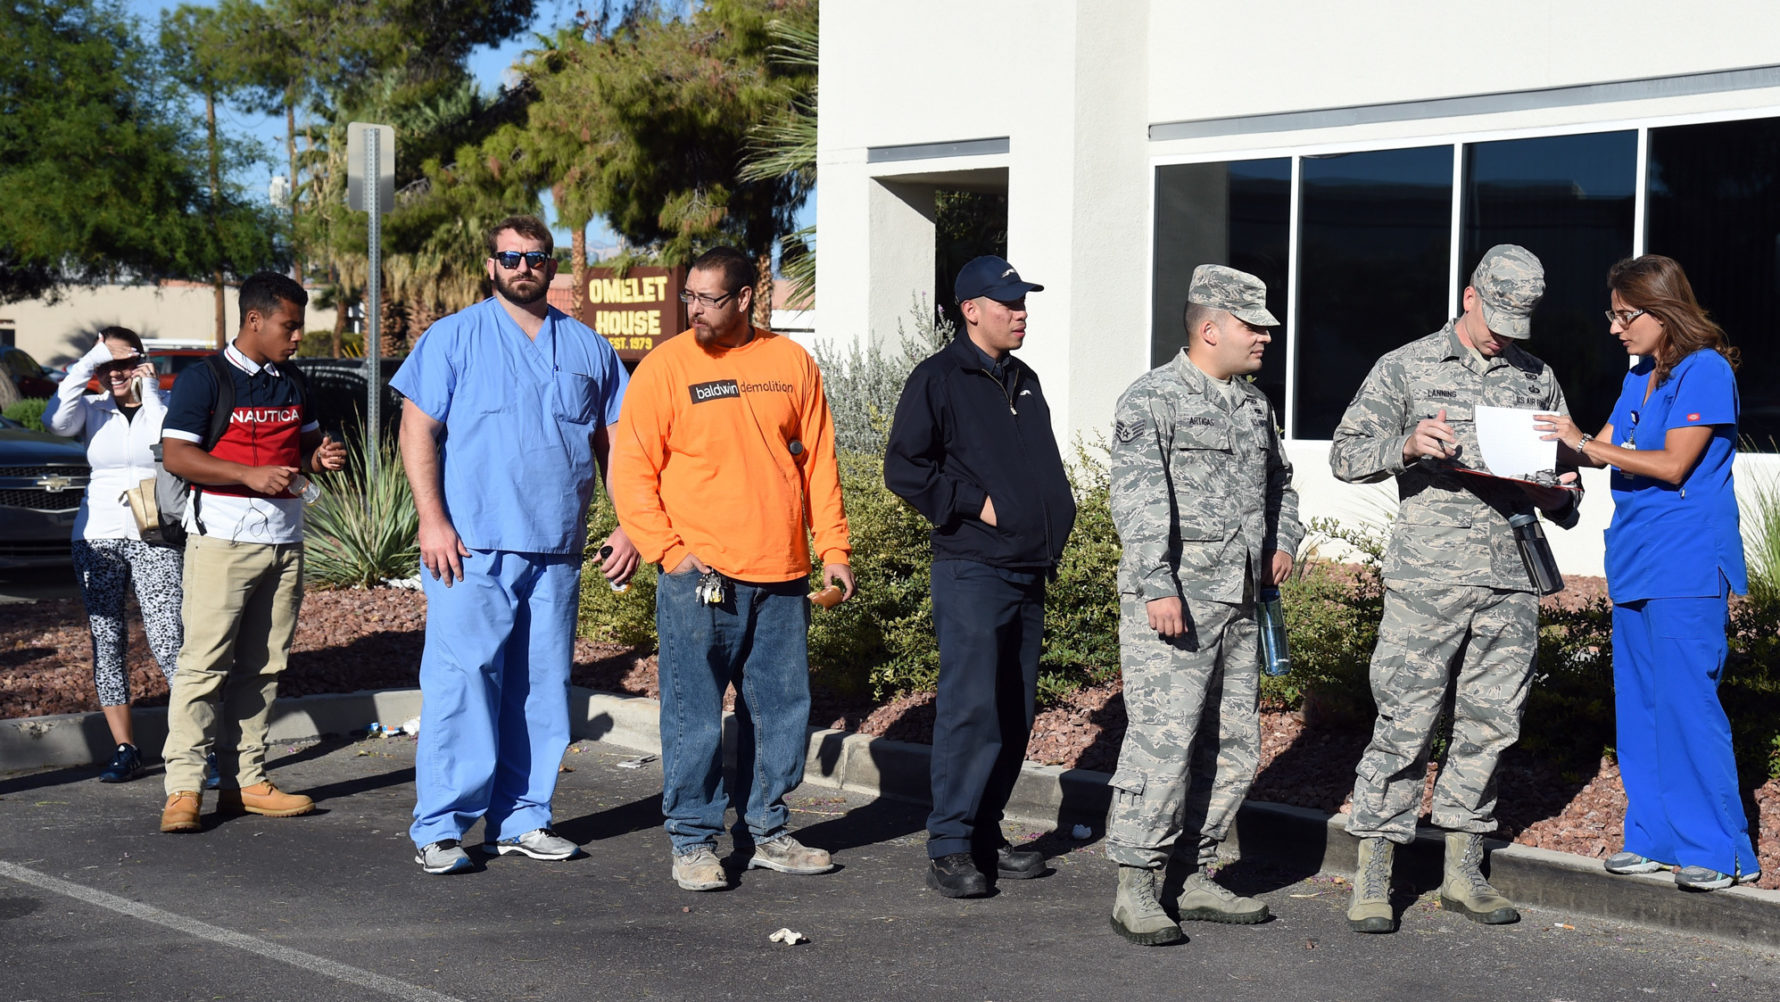 Las Vegas Hospitals Call For Backup To Handle Hundreds Of